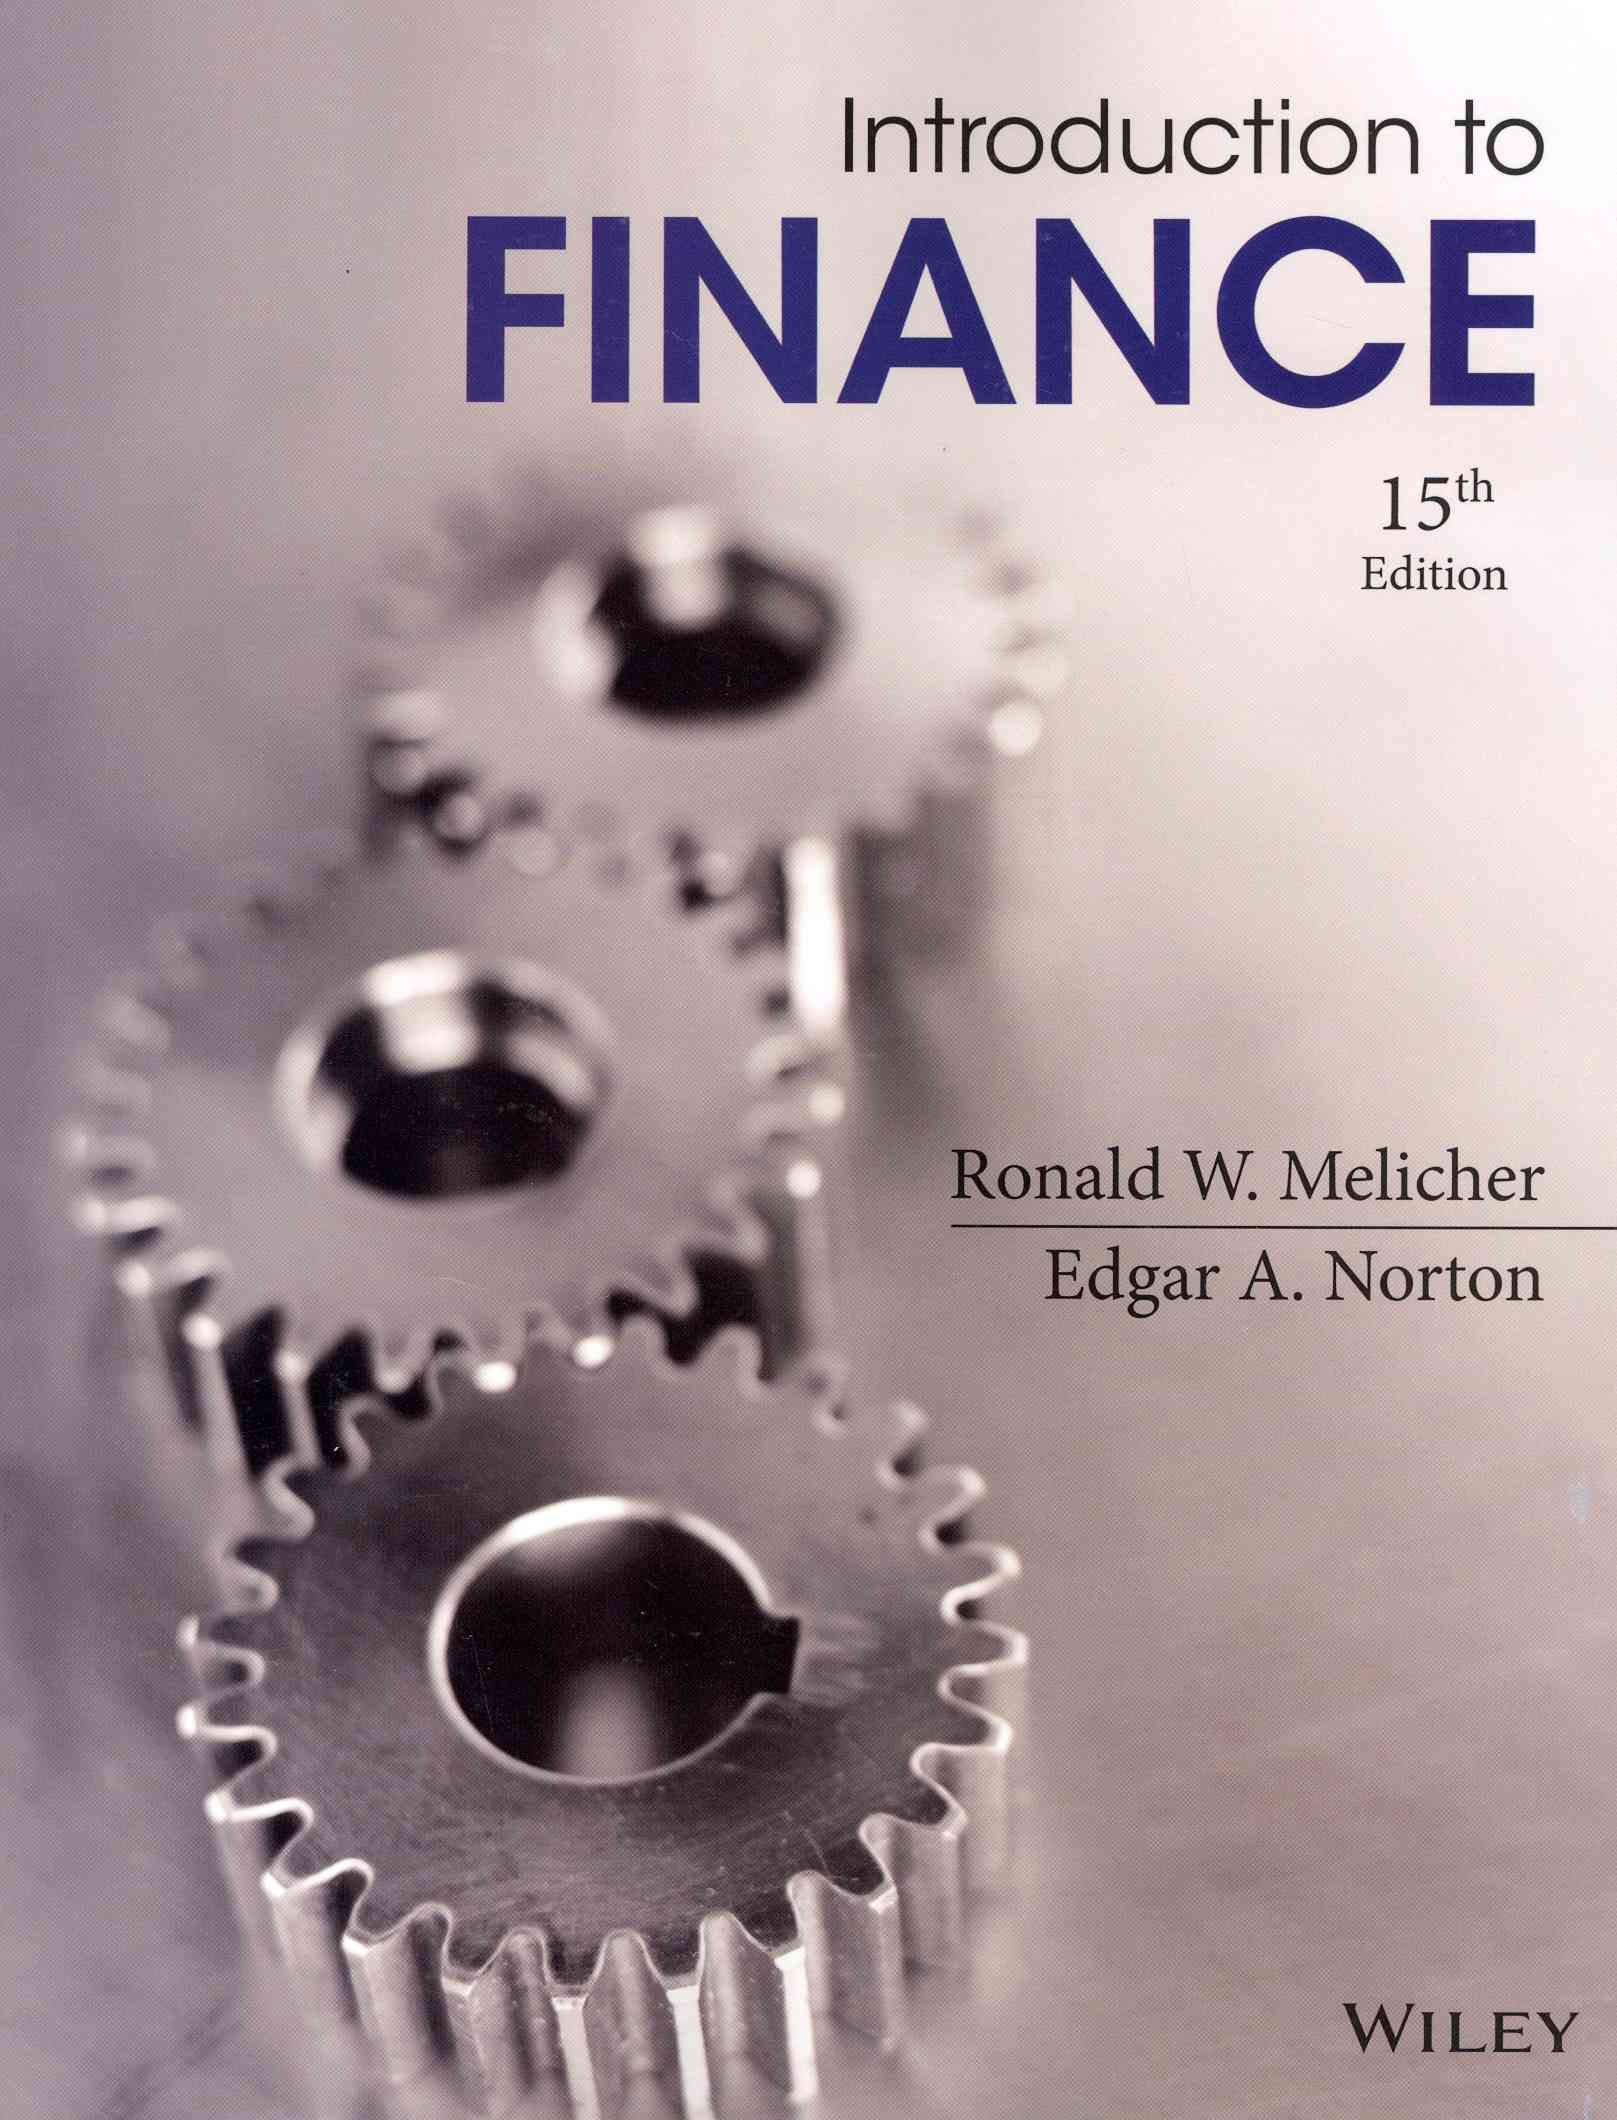 Introduction to Finance By Melicher, Ronald W./ Norton, Edgar A.